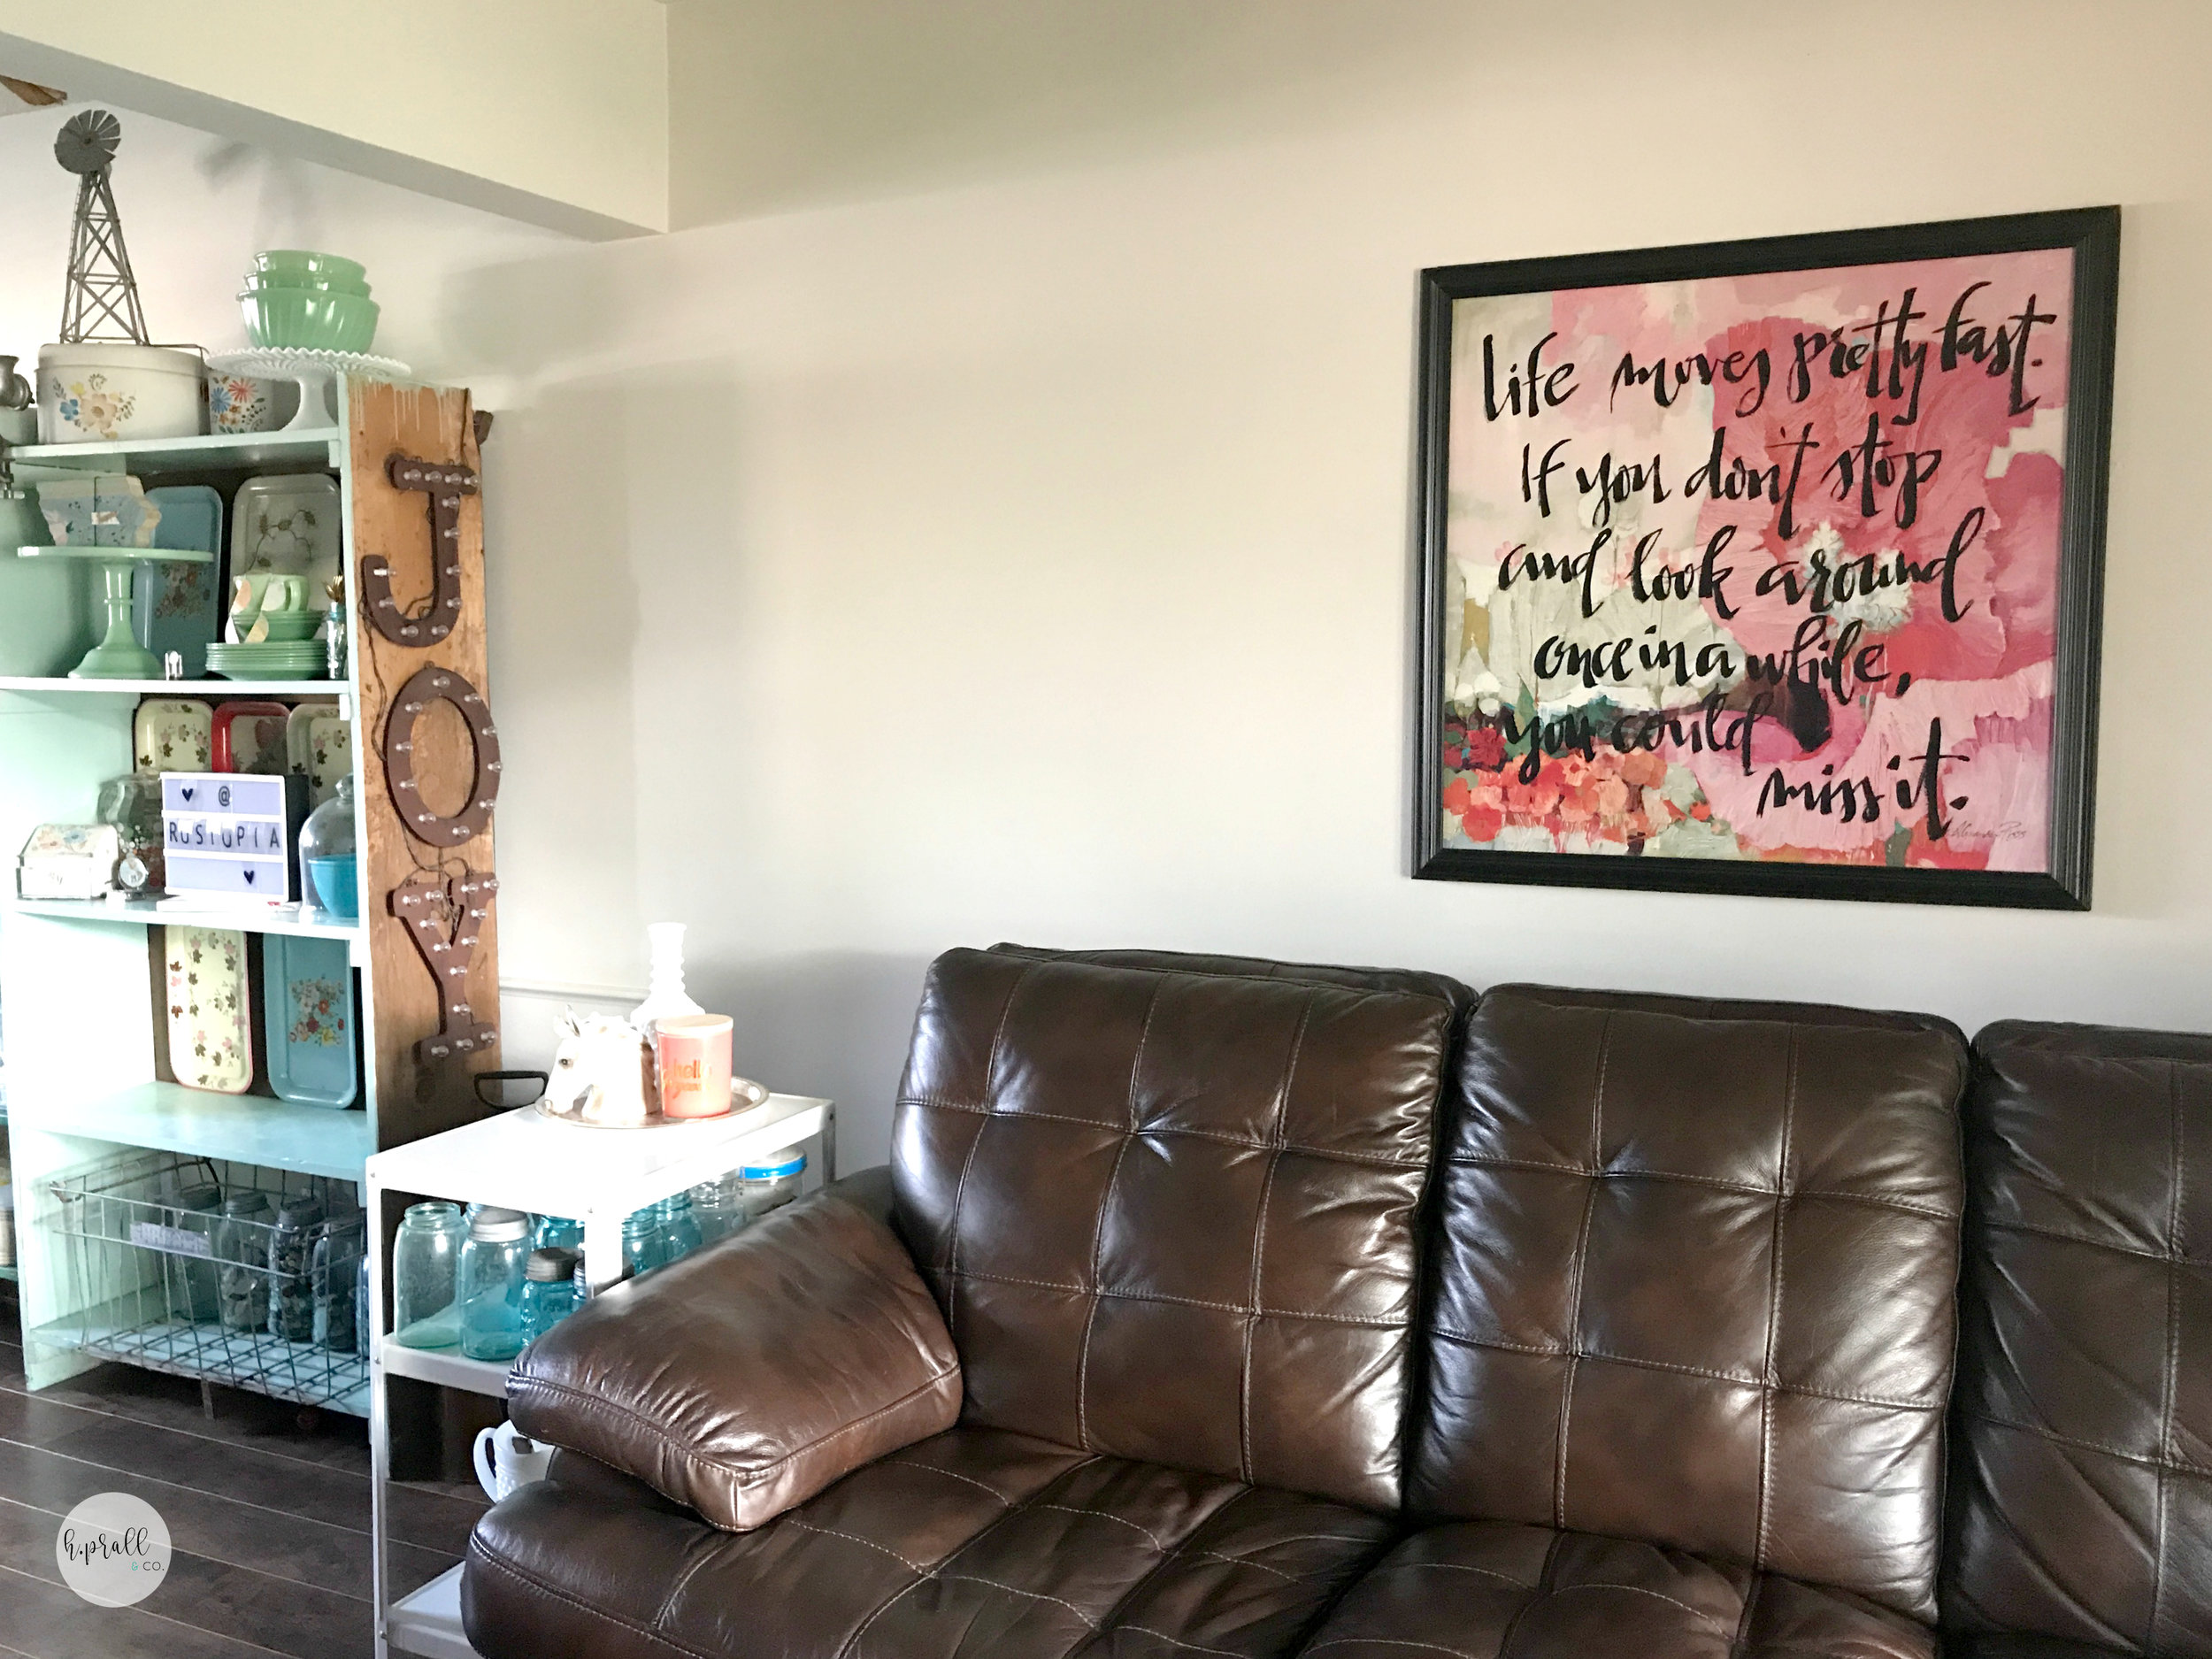 Living room with a hand lettered quote image wall decor via  H.Prall & Co.